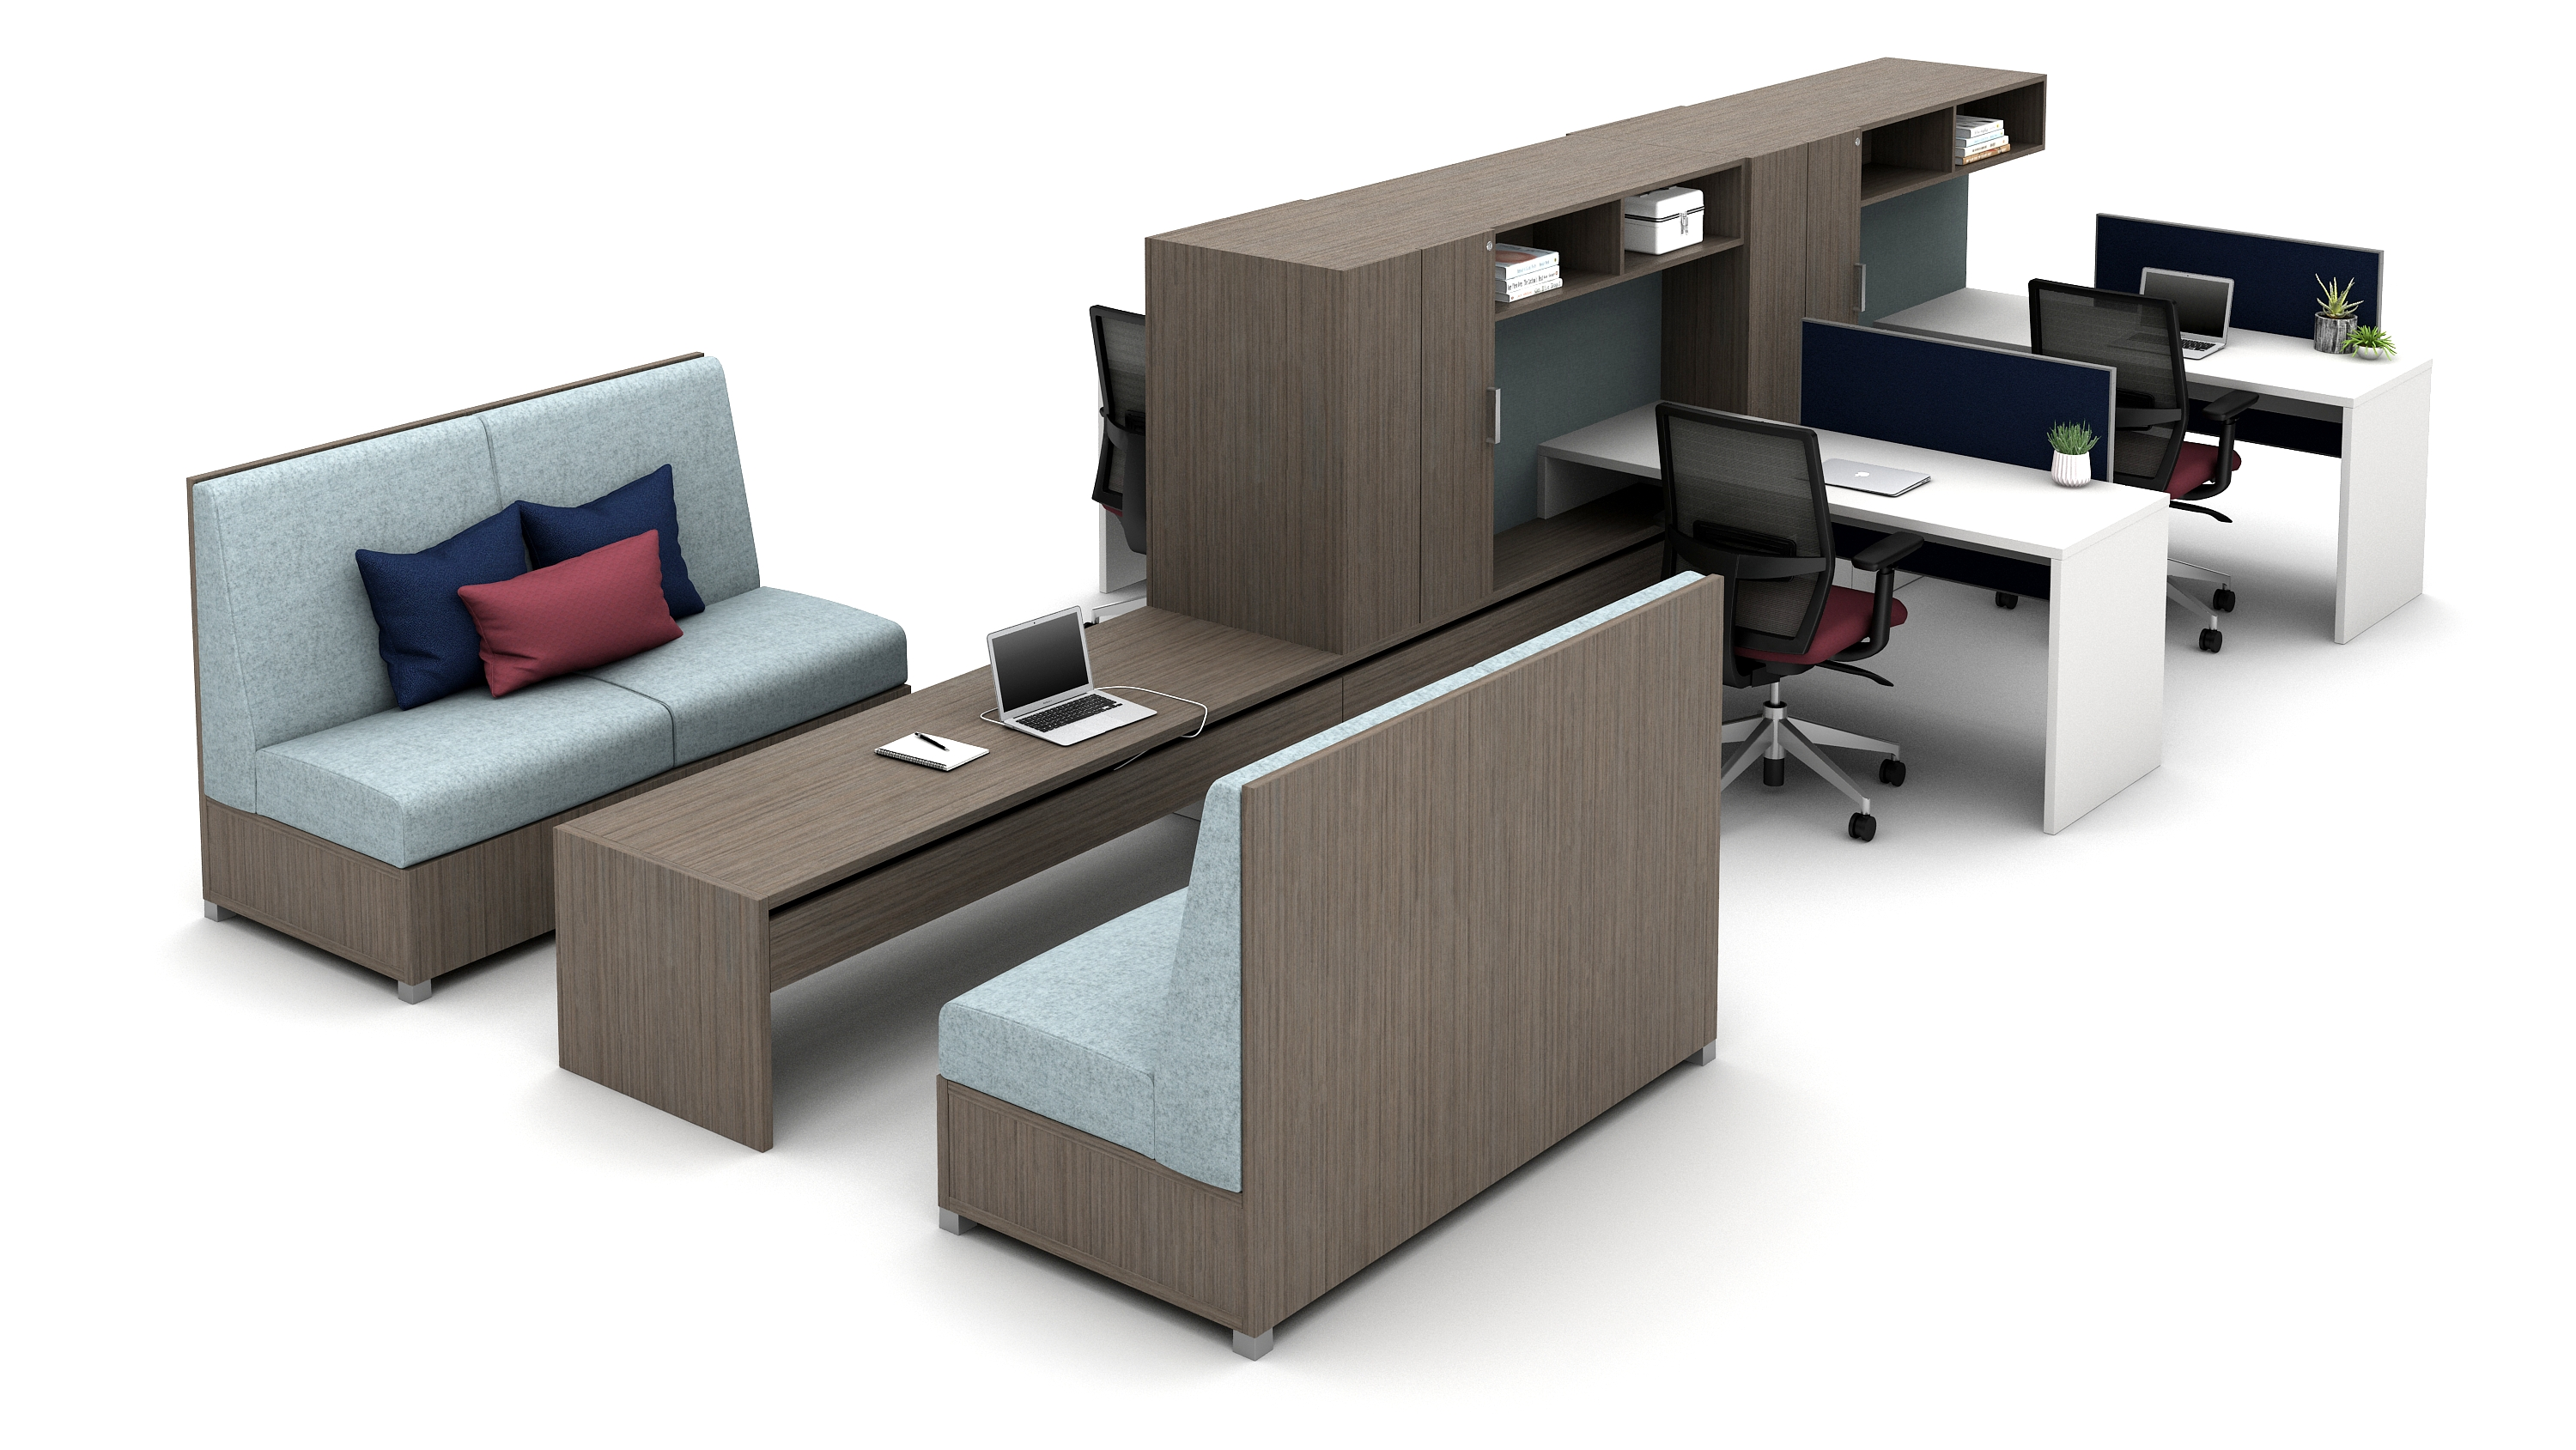 Moderate-Privacy Workstations with Cantilevered Overheads and LB Collaborative Space